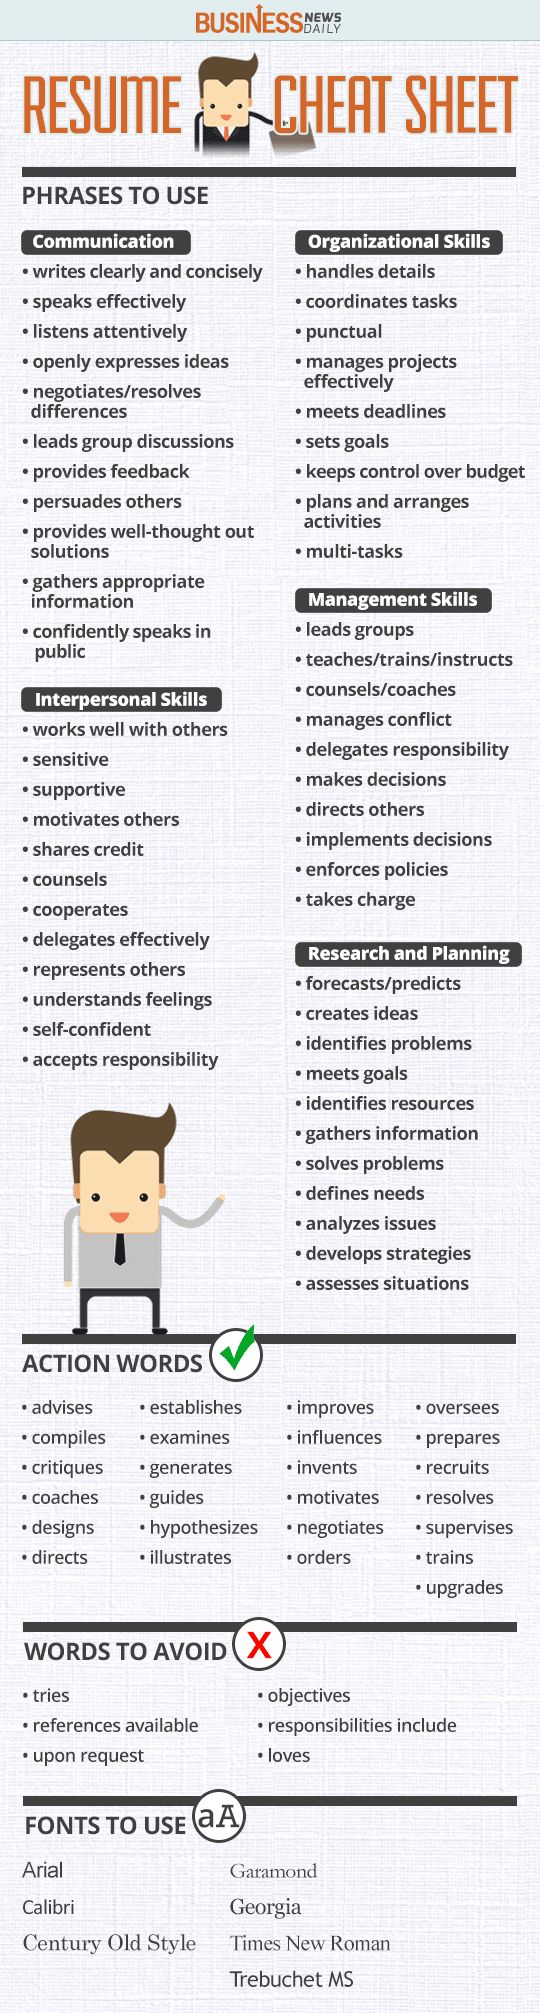 Resume Cheat Sheet in the world of business, and work life in general. Re-pinned by #Europass